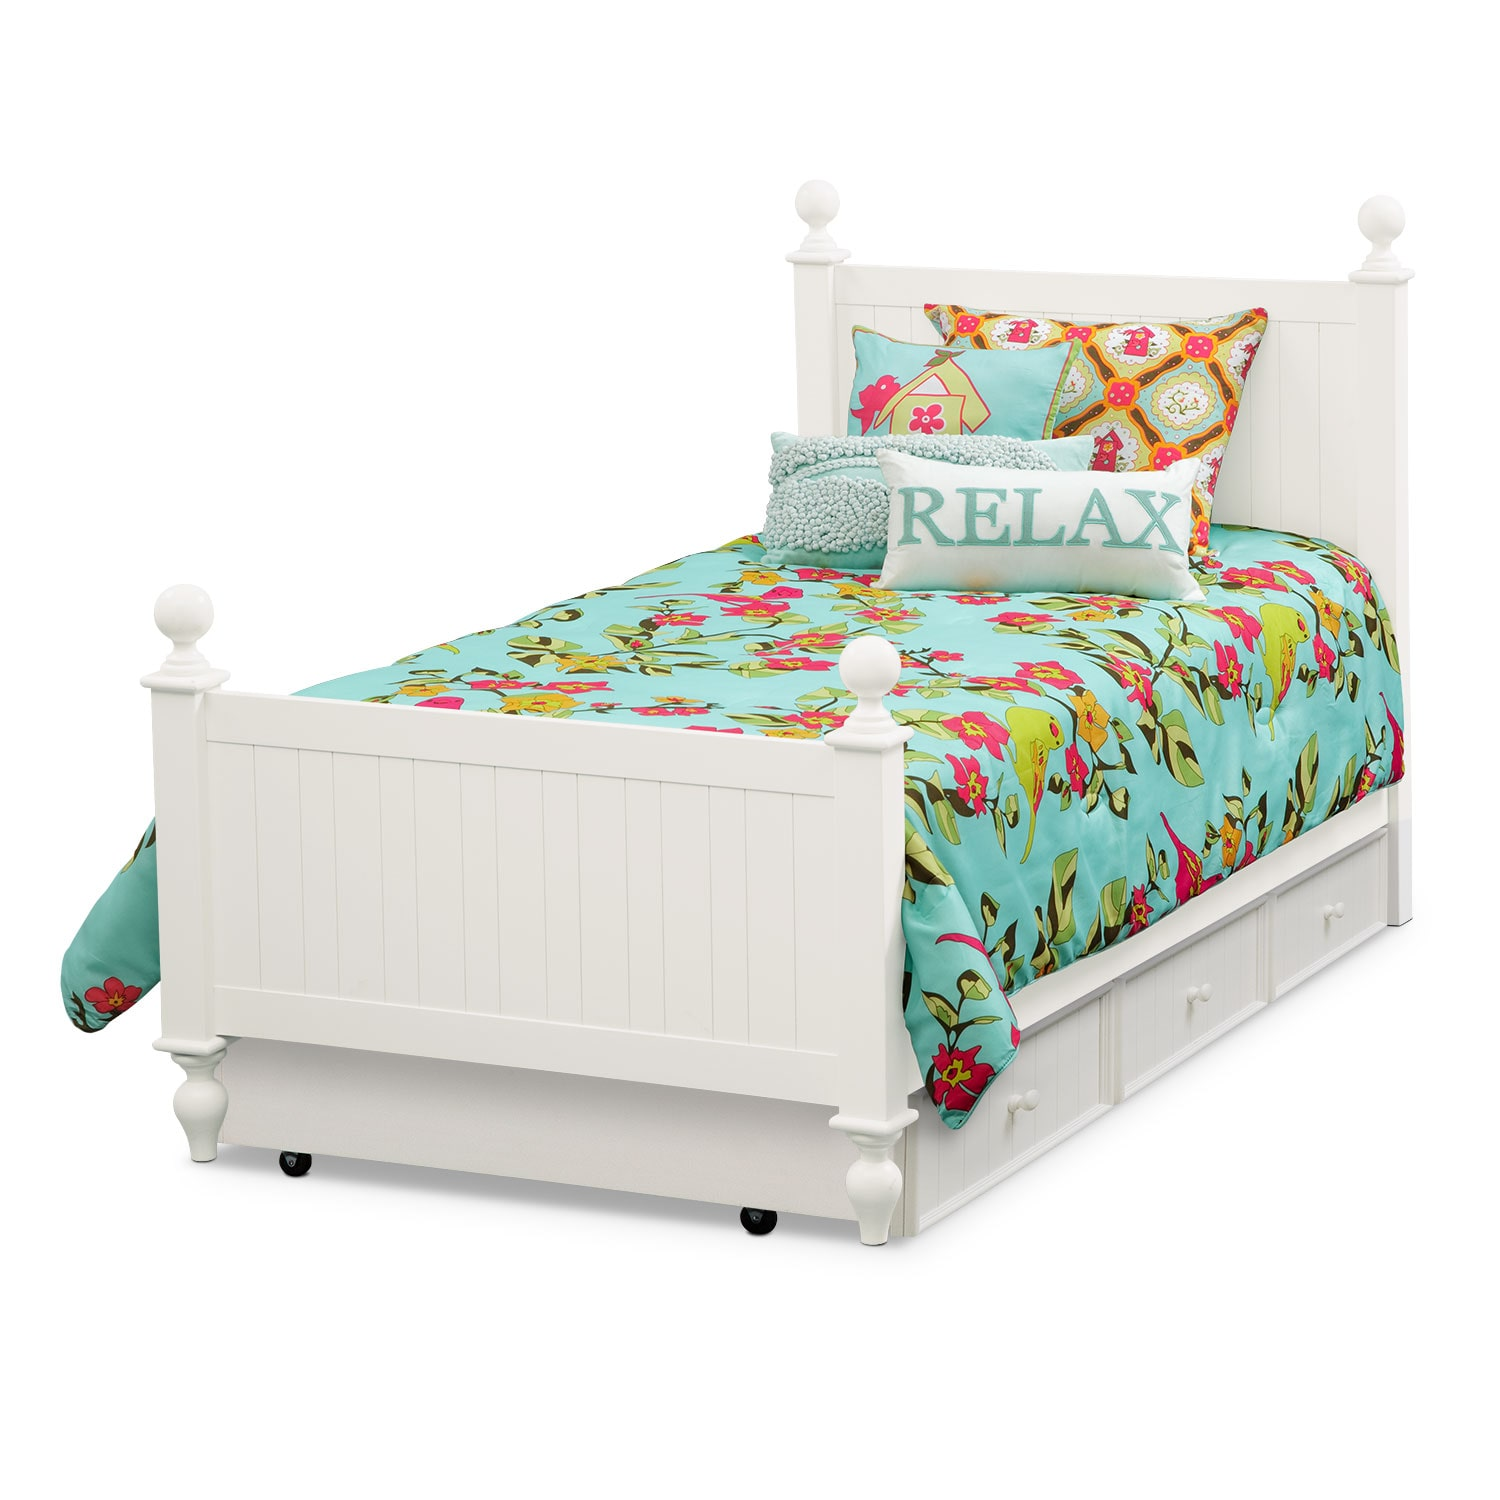 Colorworks Full Bed with Trundle - White  Value City Furniture